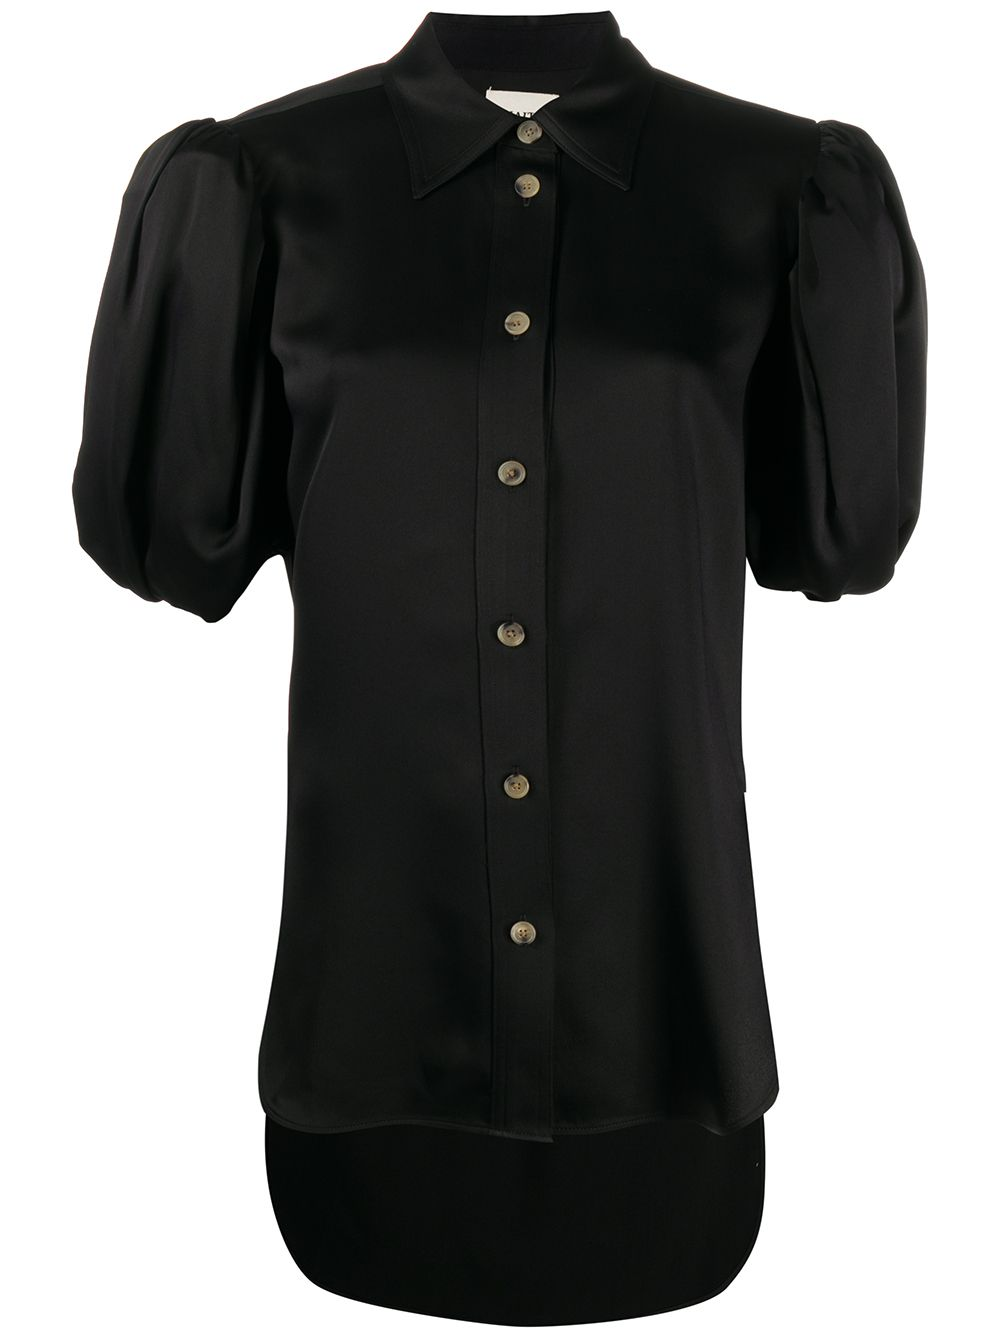 KHAITE Roberta Top - Black